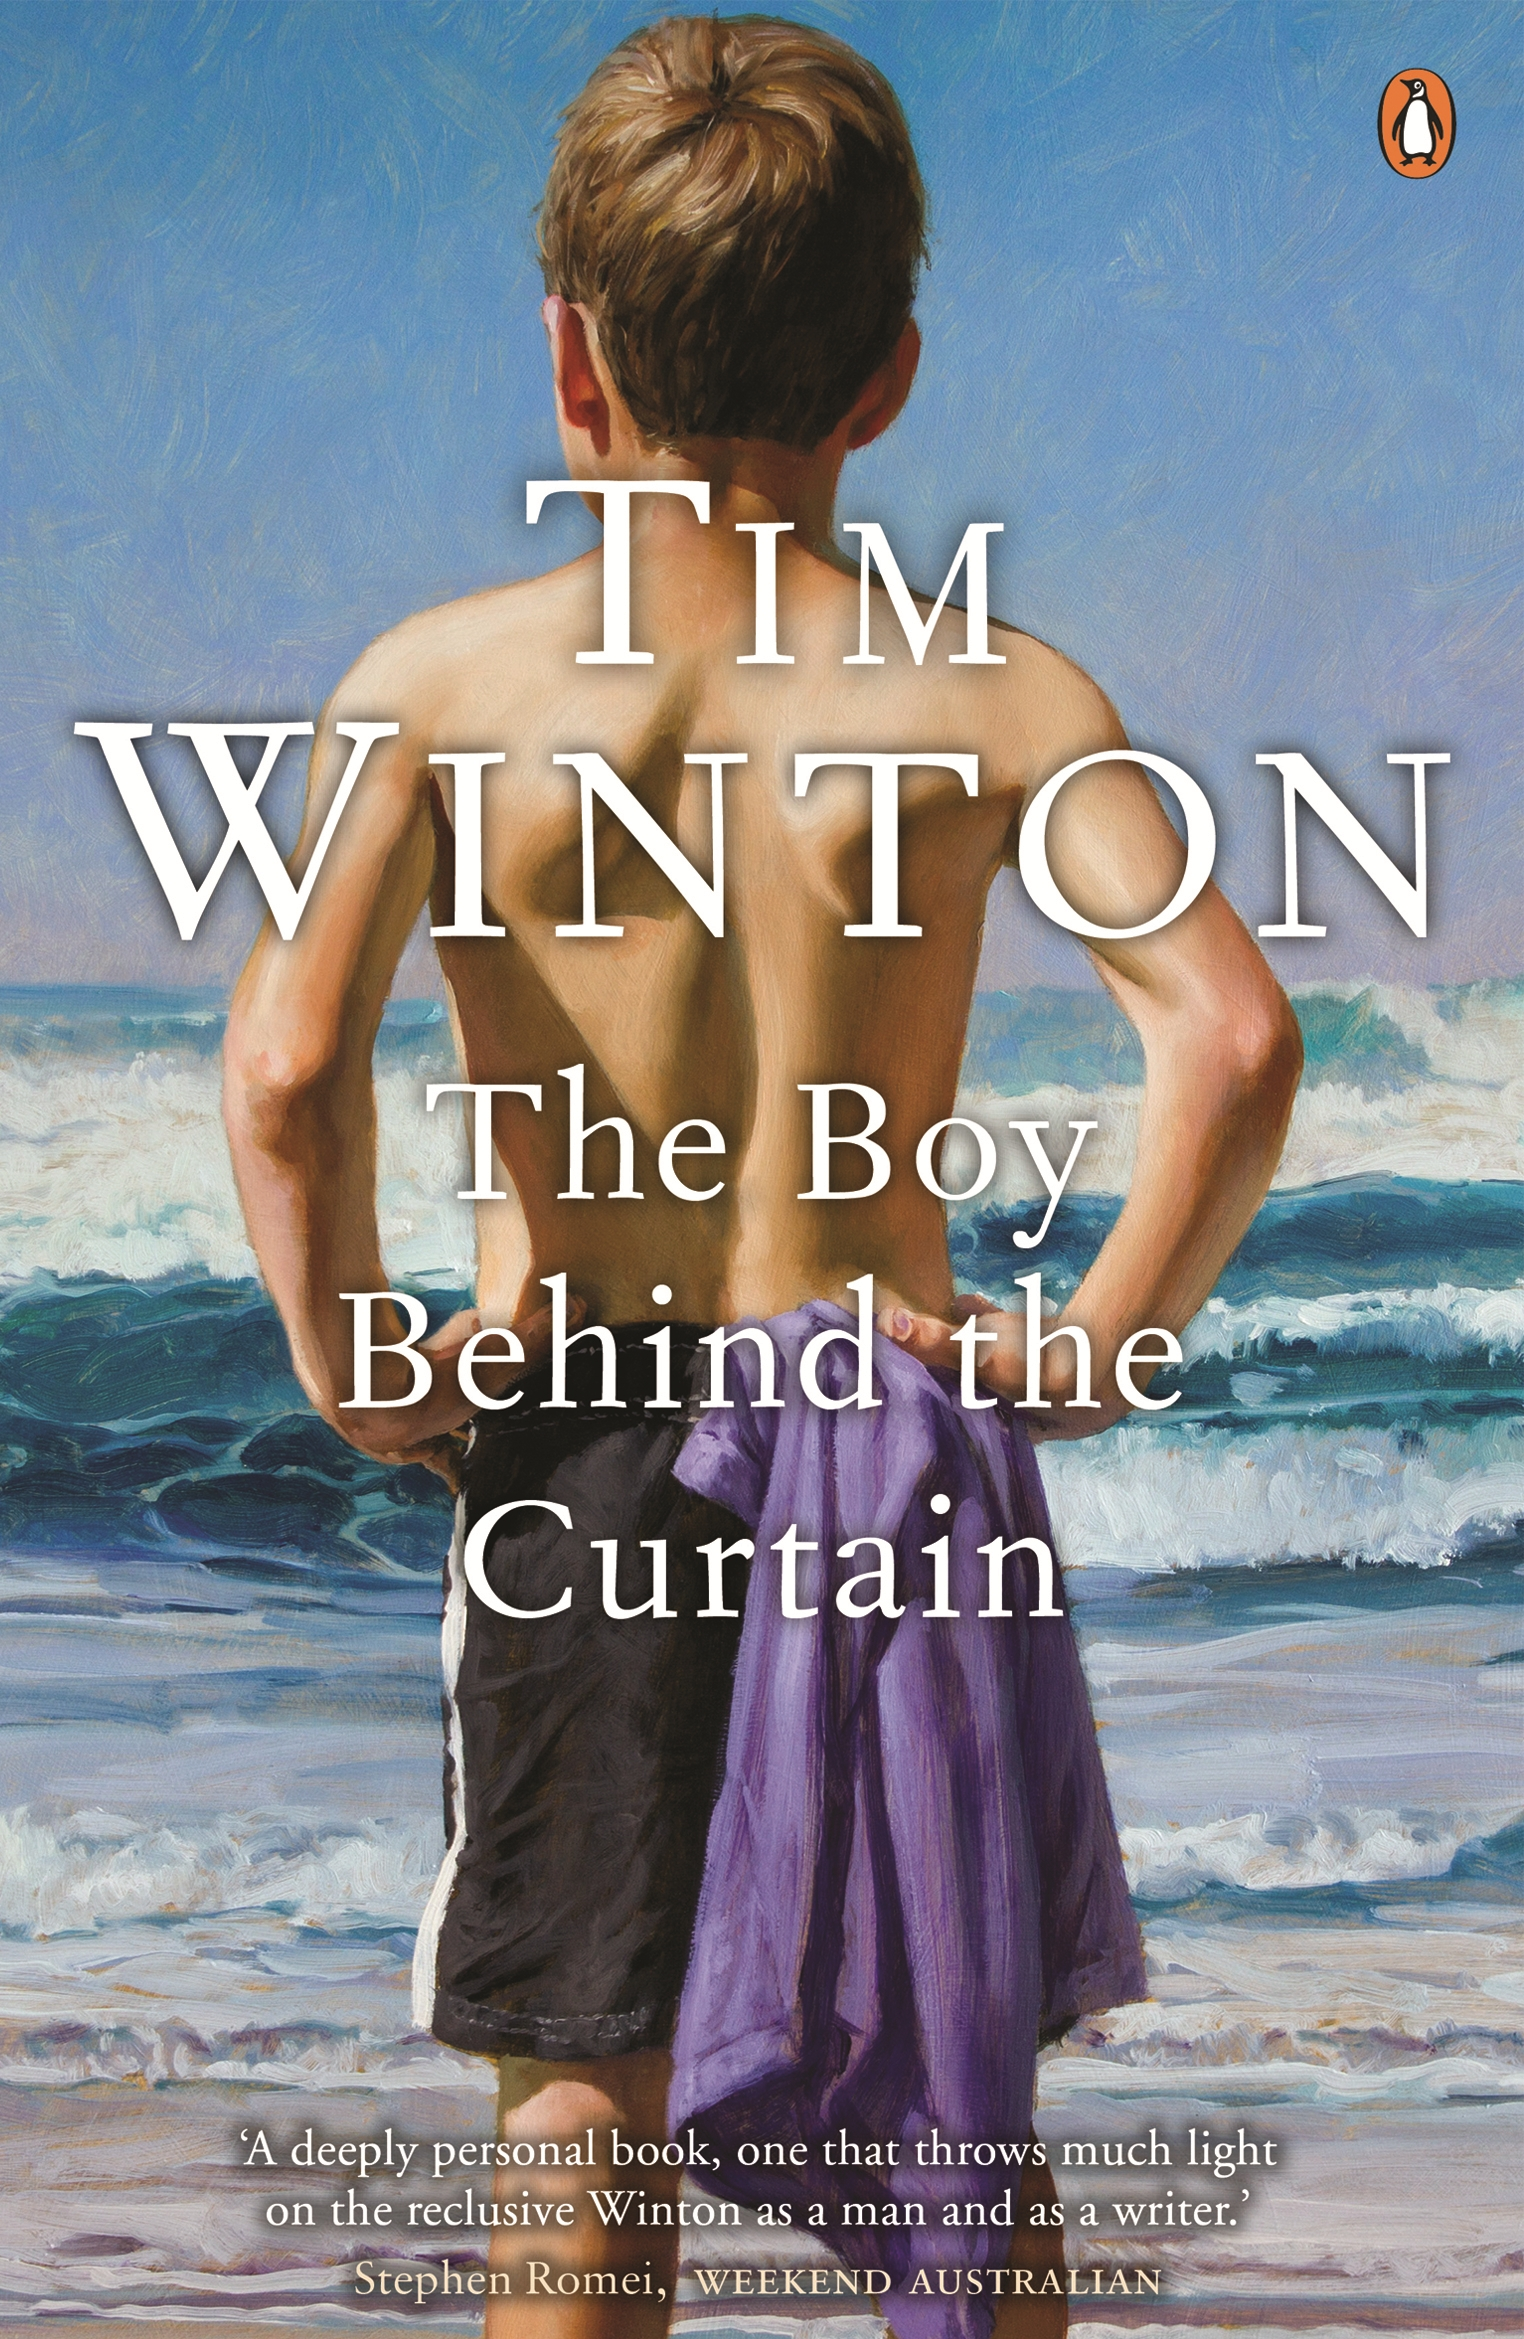 The Boy Behind the Curtain by Tim Winton Penguin Books Australia